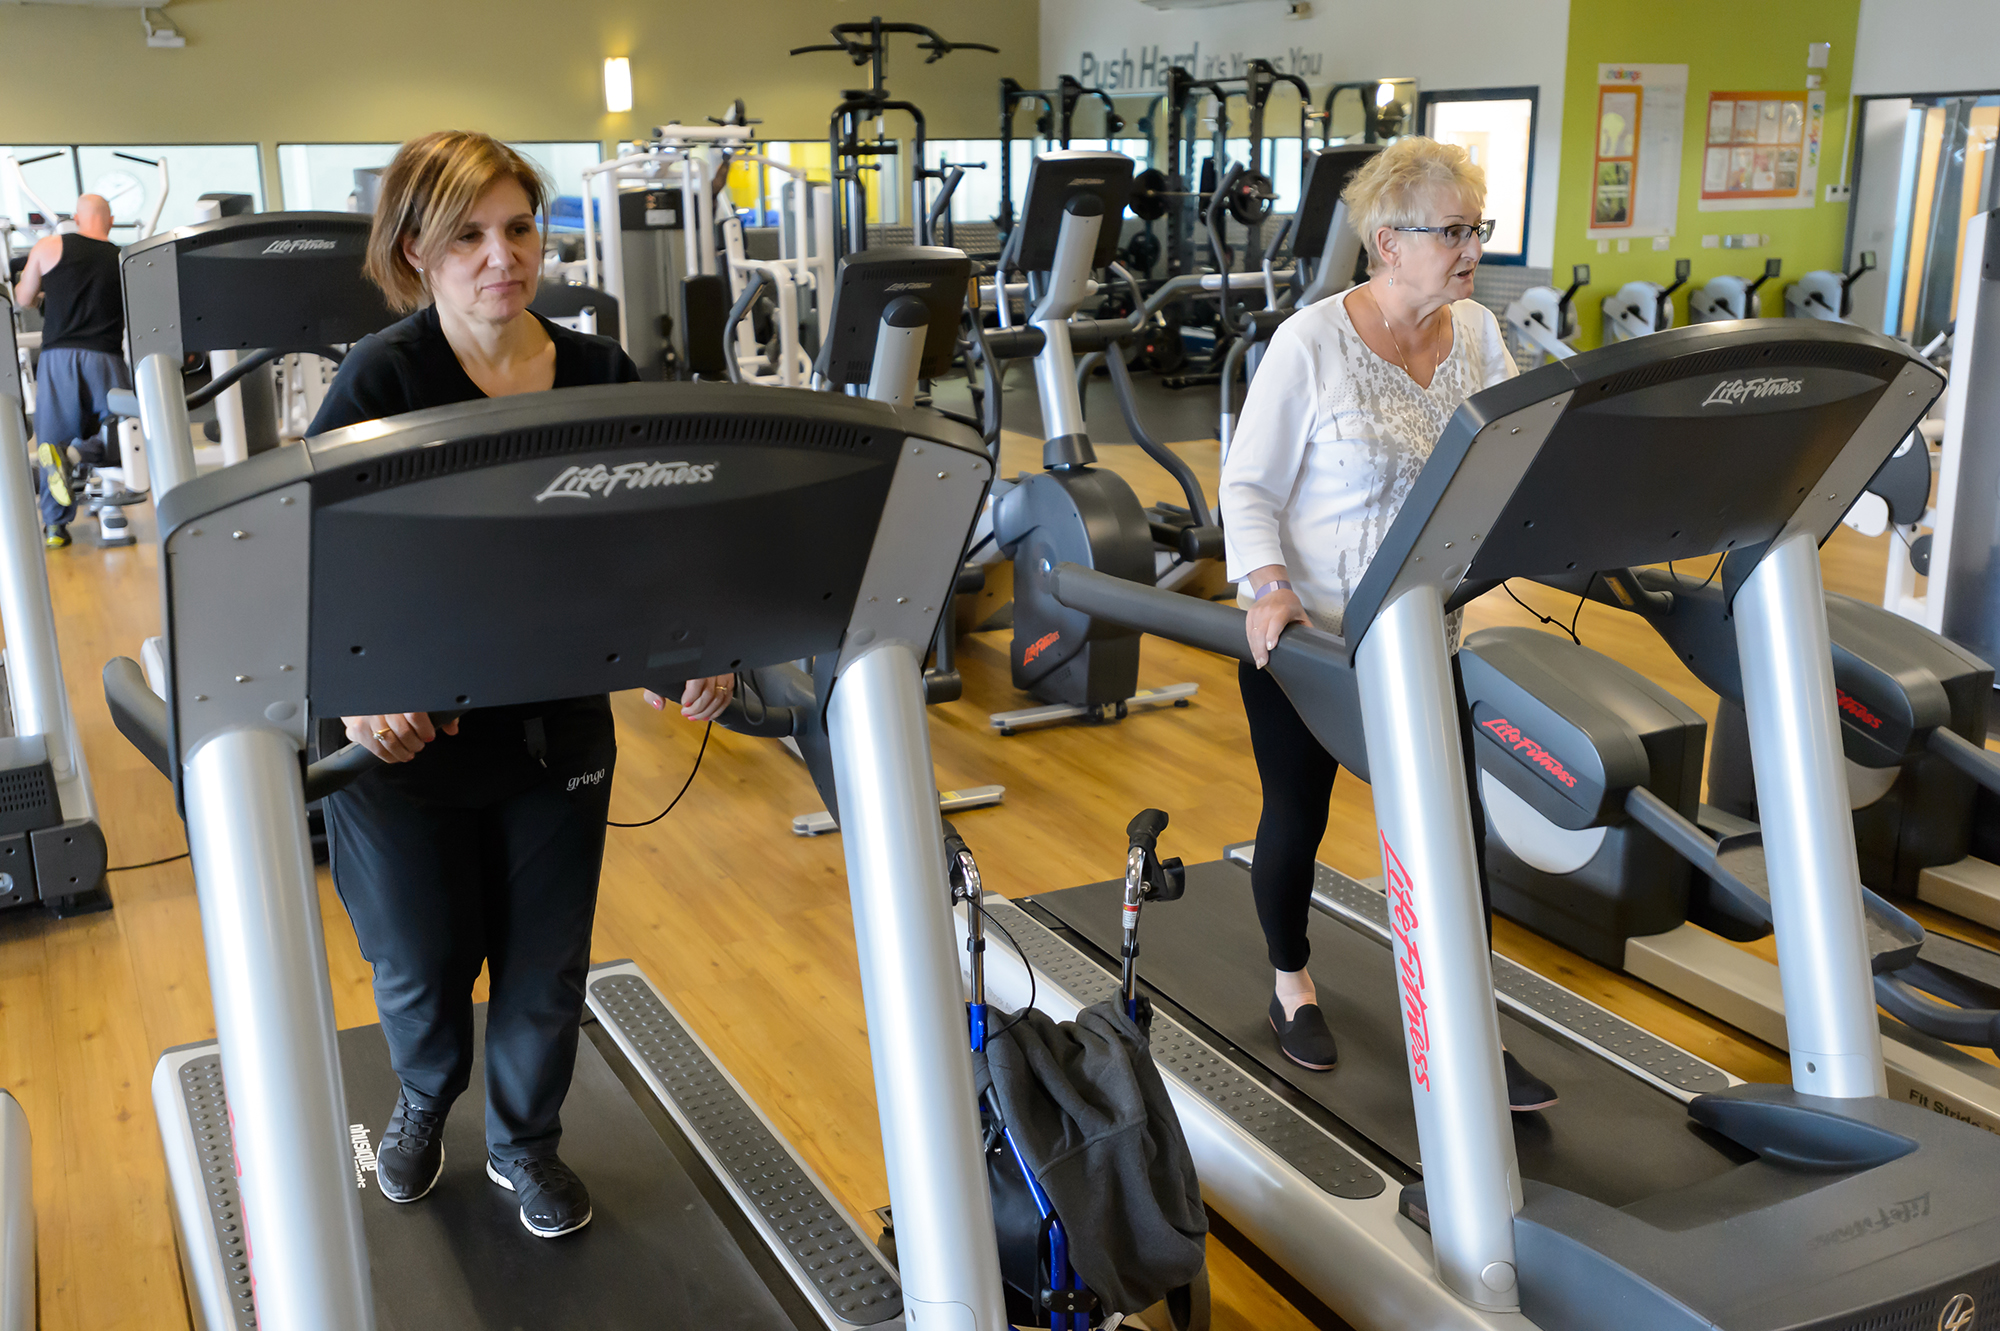 Two women exercise on treadmills in a gym